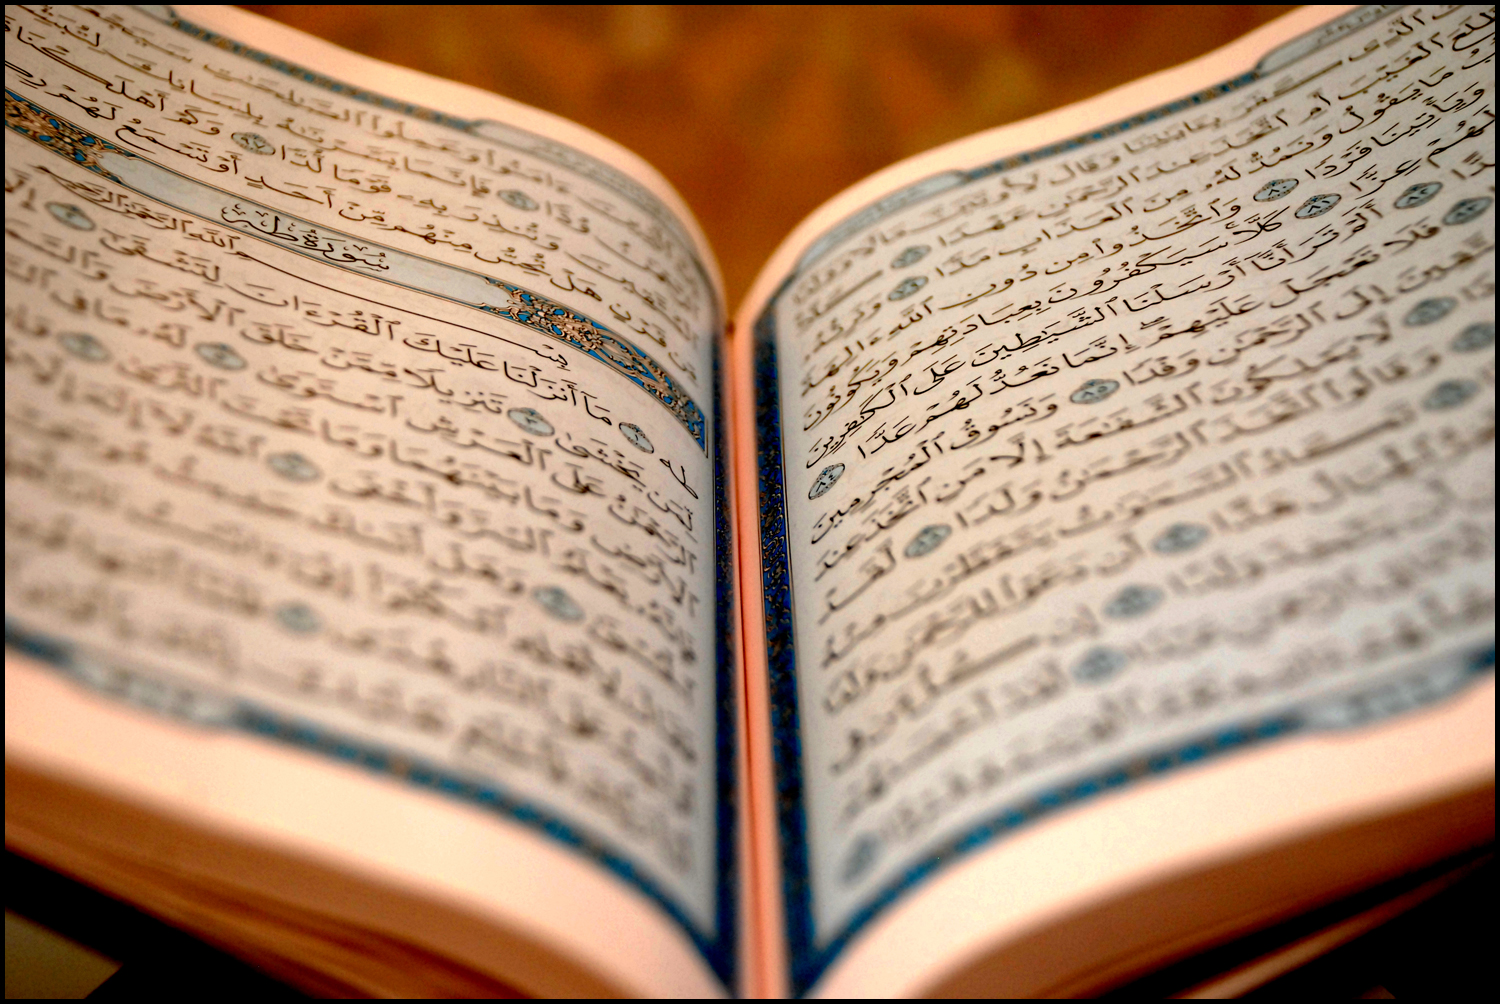 My image of the Quran